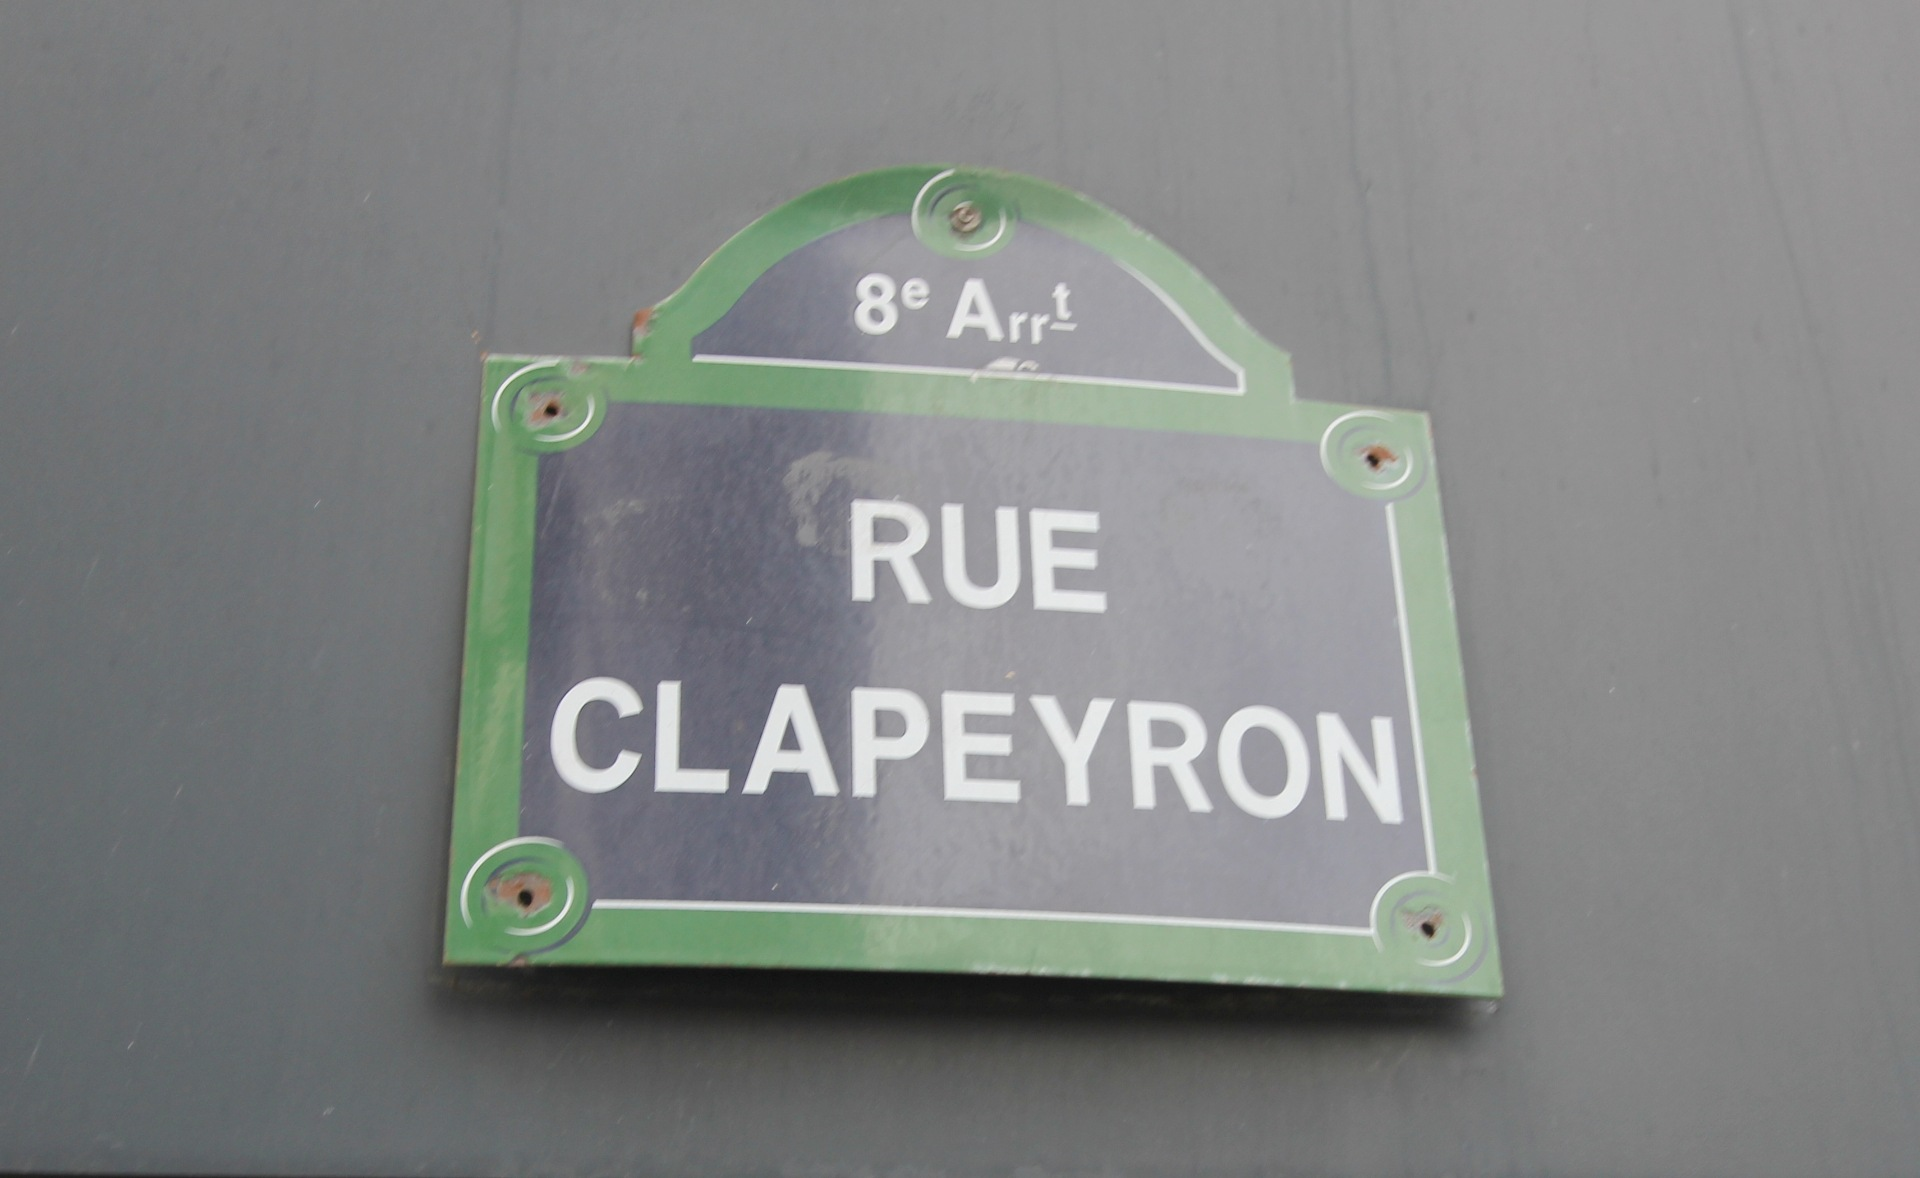 District Europe (rue Clapeyron in the 8th arrondissement), Legally launched studio of 9.88 m² Law Carrez located in a beautiful well maintained building 3